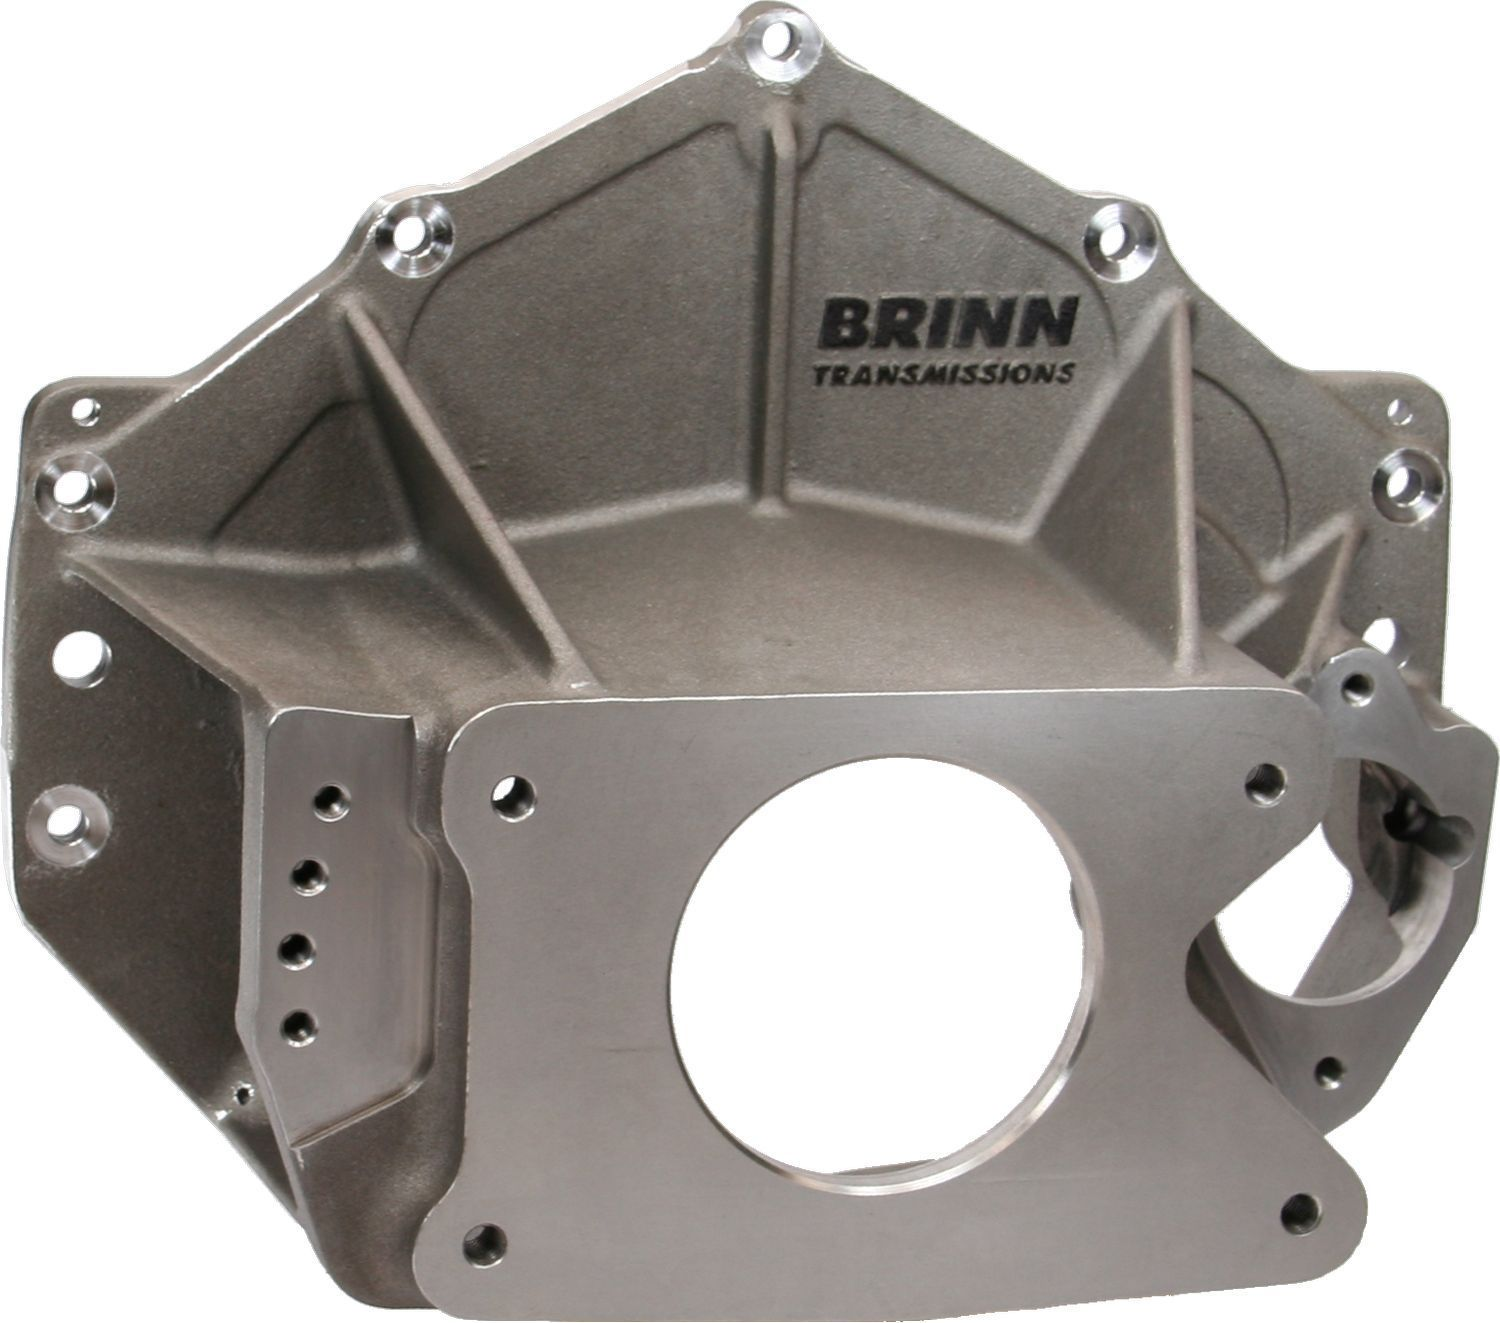 Brinn Transmission 79104 Bellhousing, Reverse Mount, Idler Gear, Side Pump Mount, Magnesium, Natural, Brinn Transmission, Chevy V8, Each